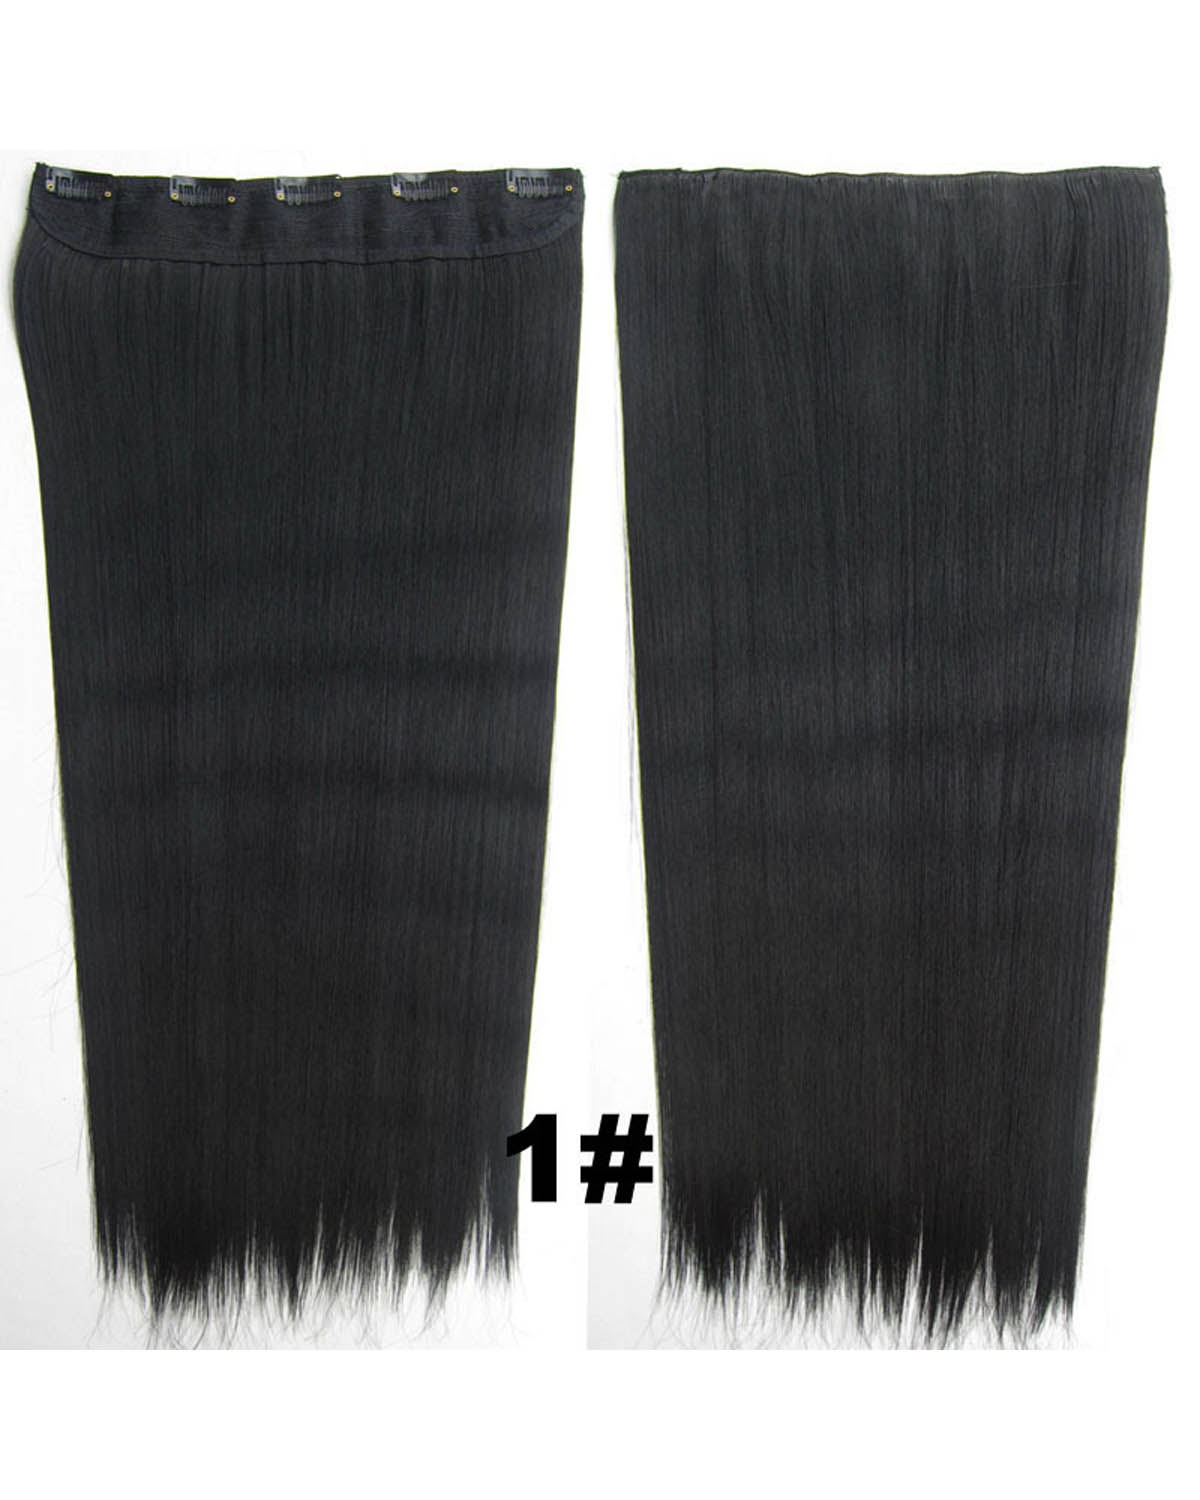 24 inch Stylish Straight and Long One Piece 5 Clips Clip in Synthetic Hair Extension 1#